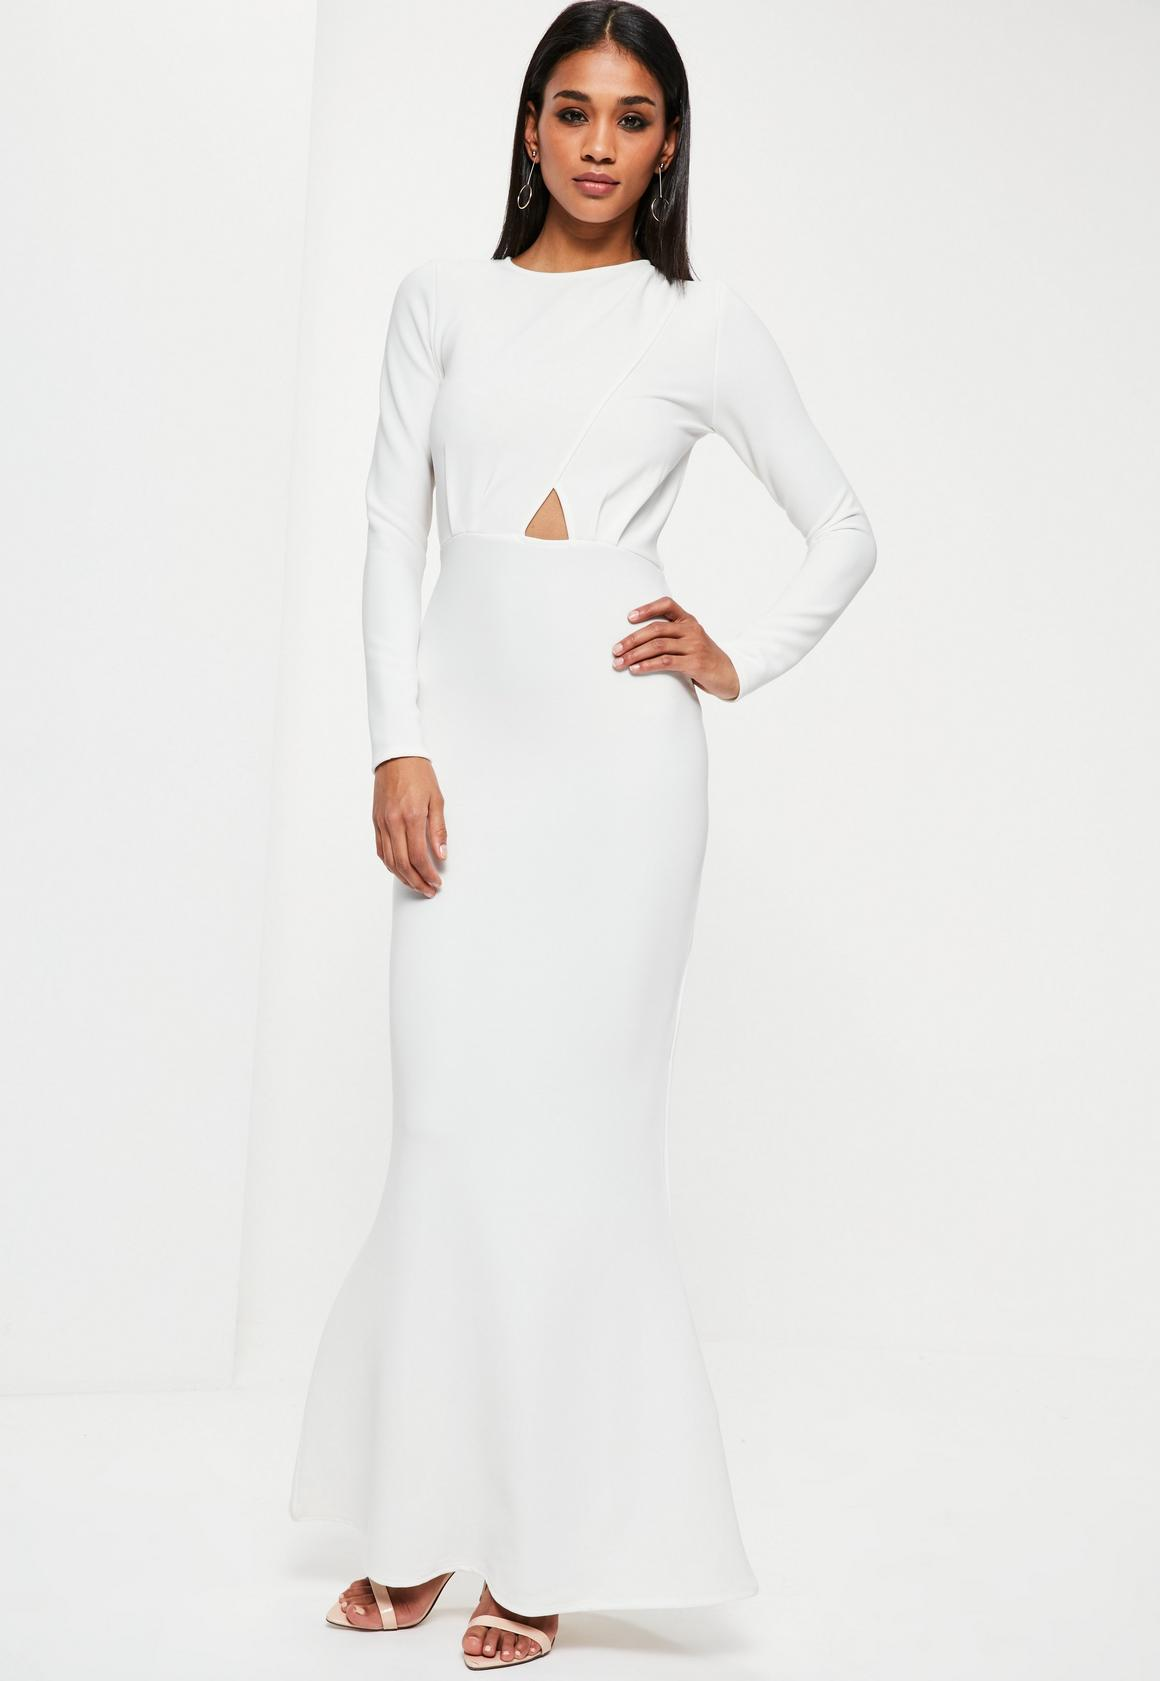 White Long Sleeve Backless Maxi Dress | Missguided Ireland